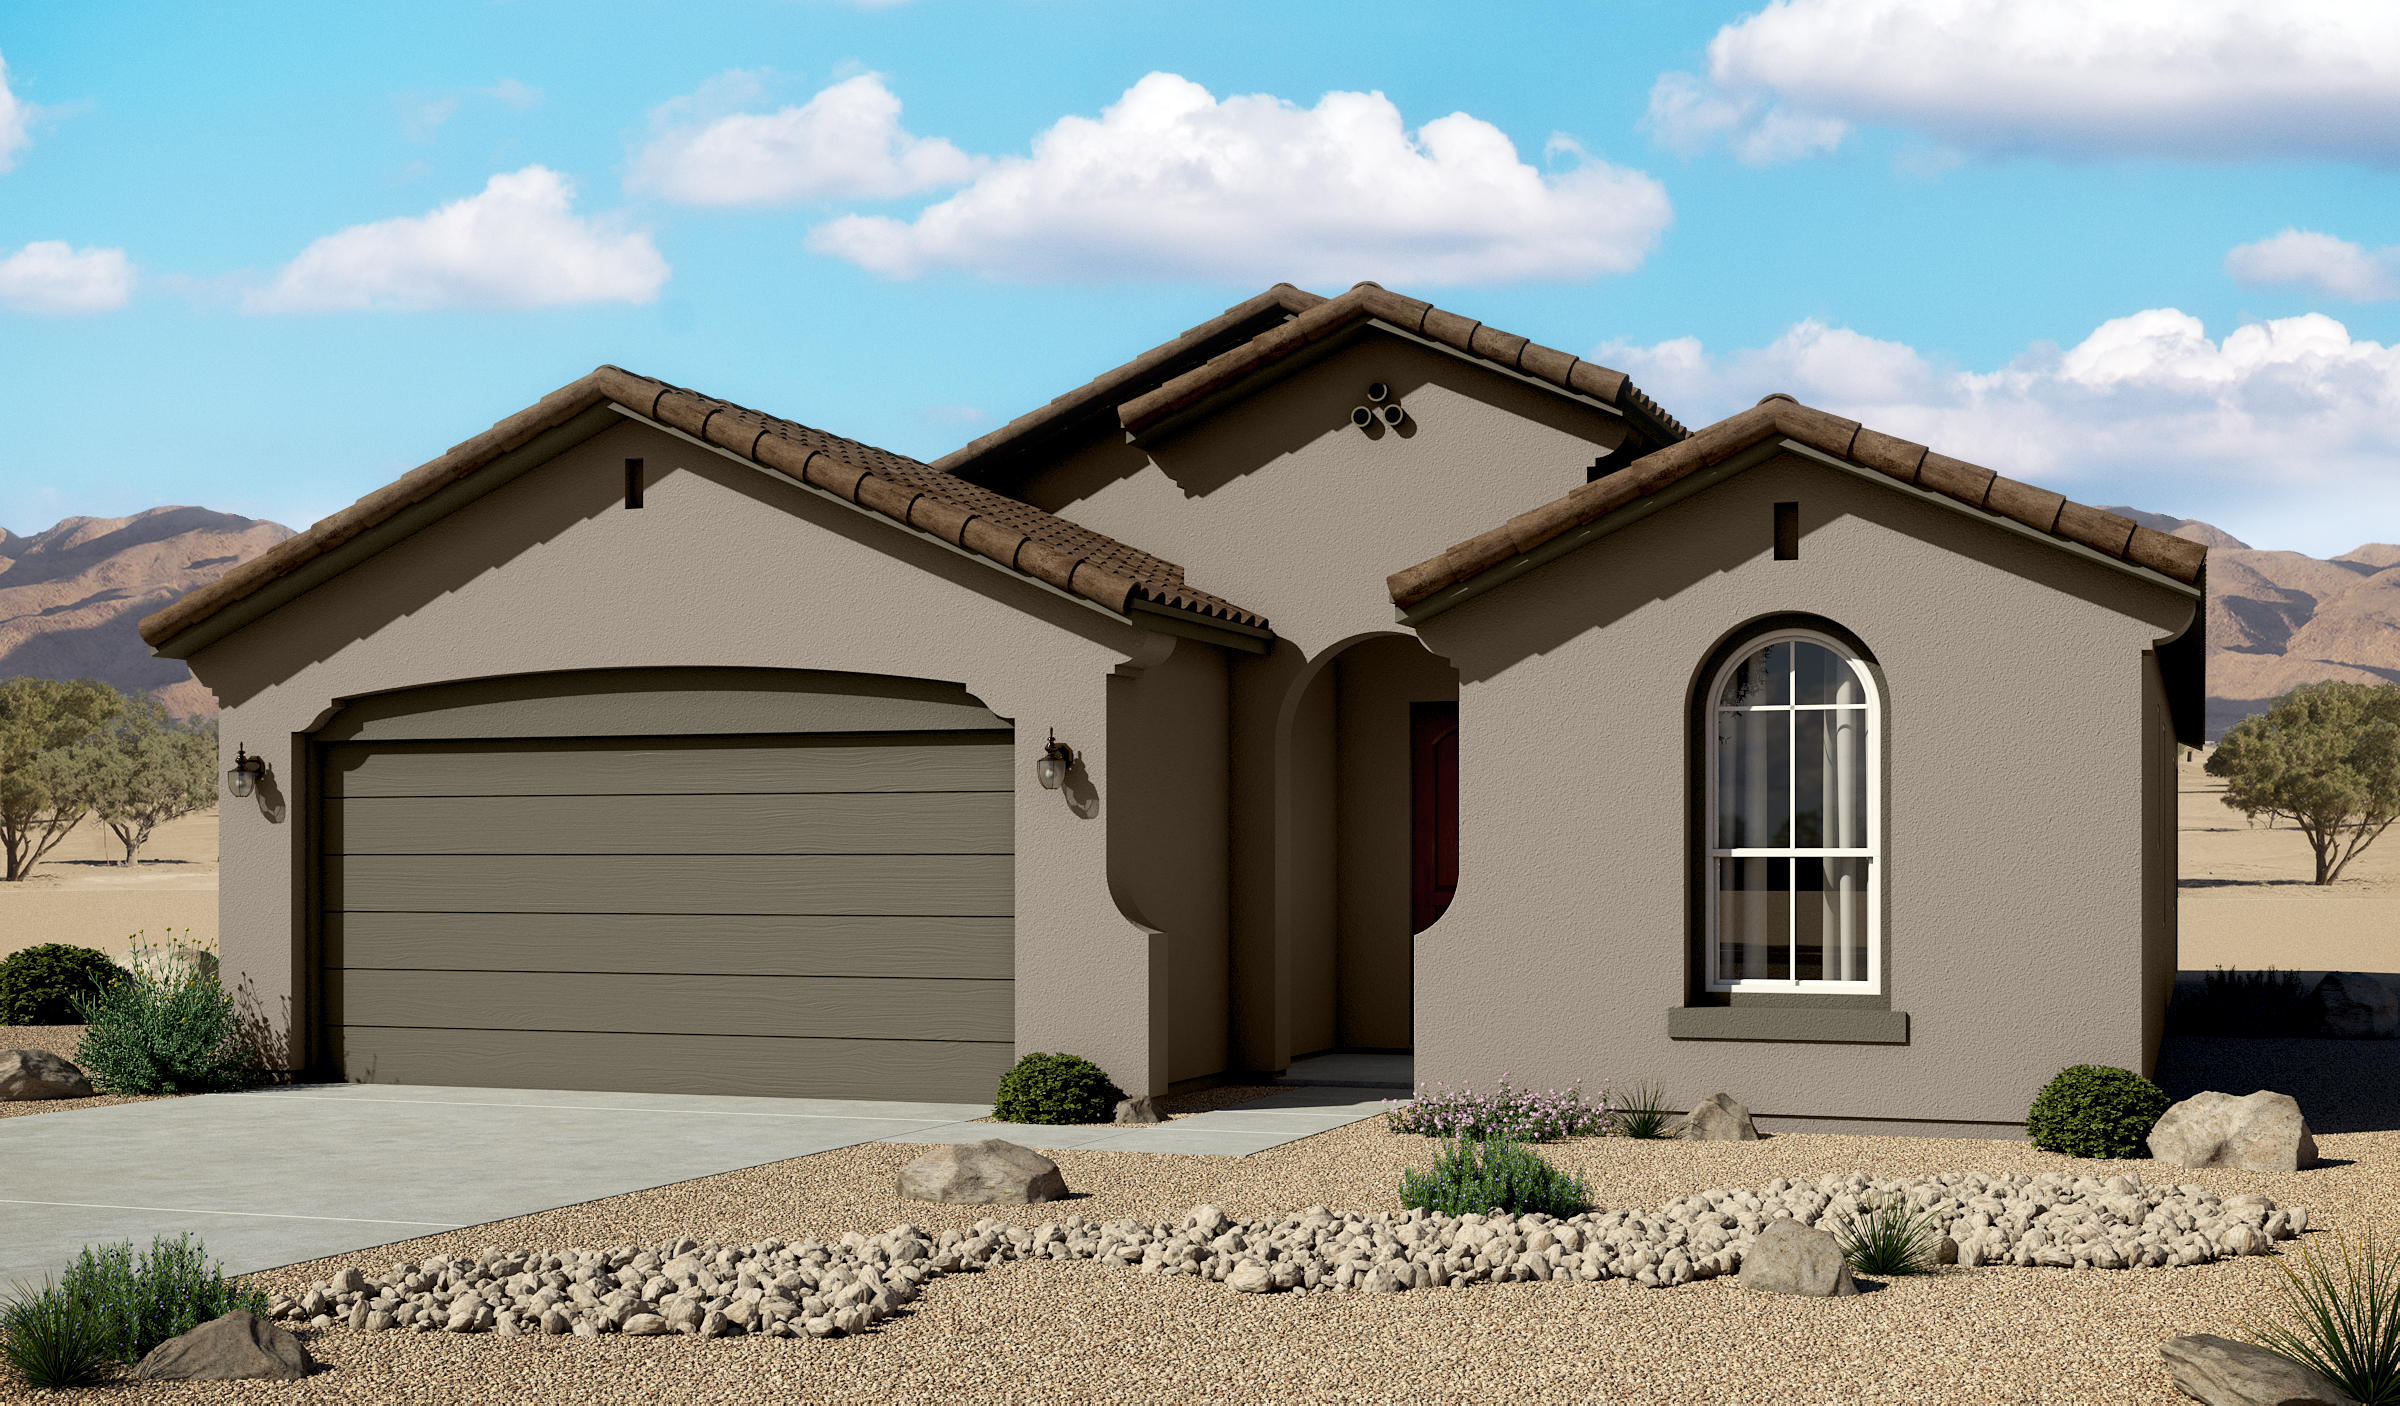 Estimated date fo completion: 07/31/2020Features:  Gourmet Kitchen, Farm Sink, 8' doors, Pendant lights over Kitchen Countertops, Upgraded Granite, 2'' Blinds, Garage door opener, upgraded floor and wall tile